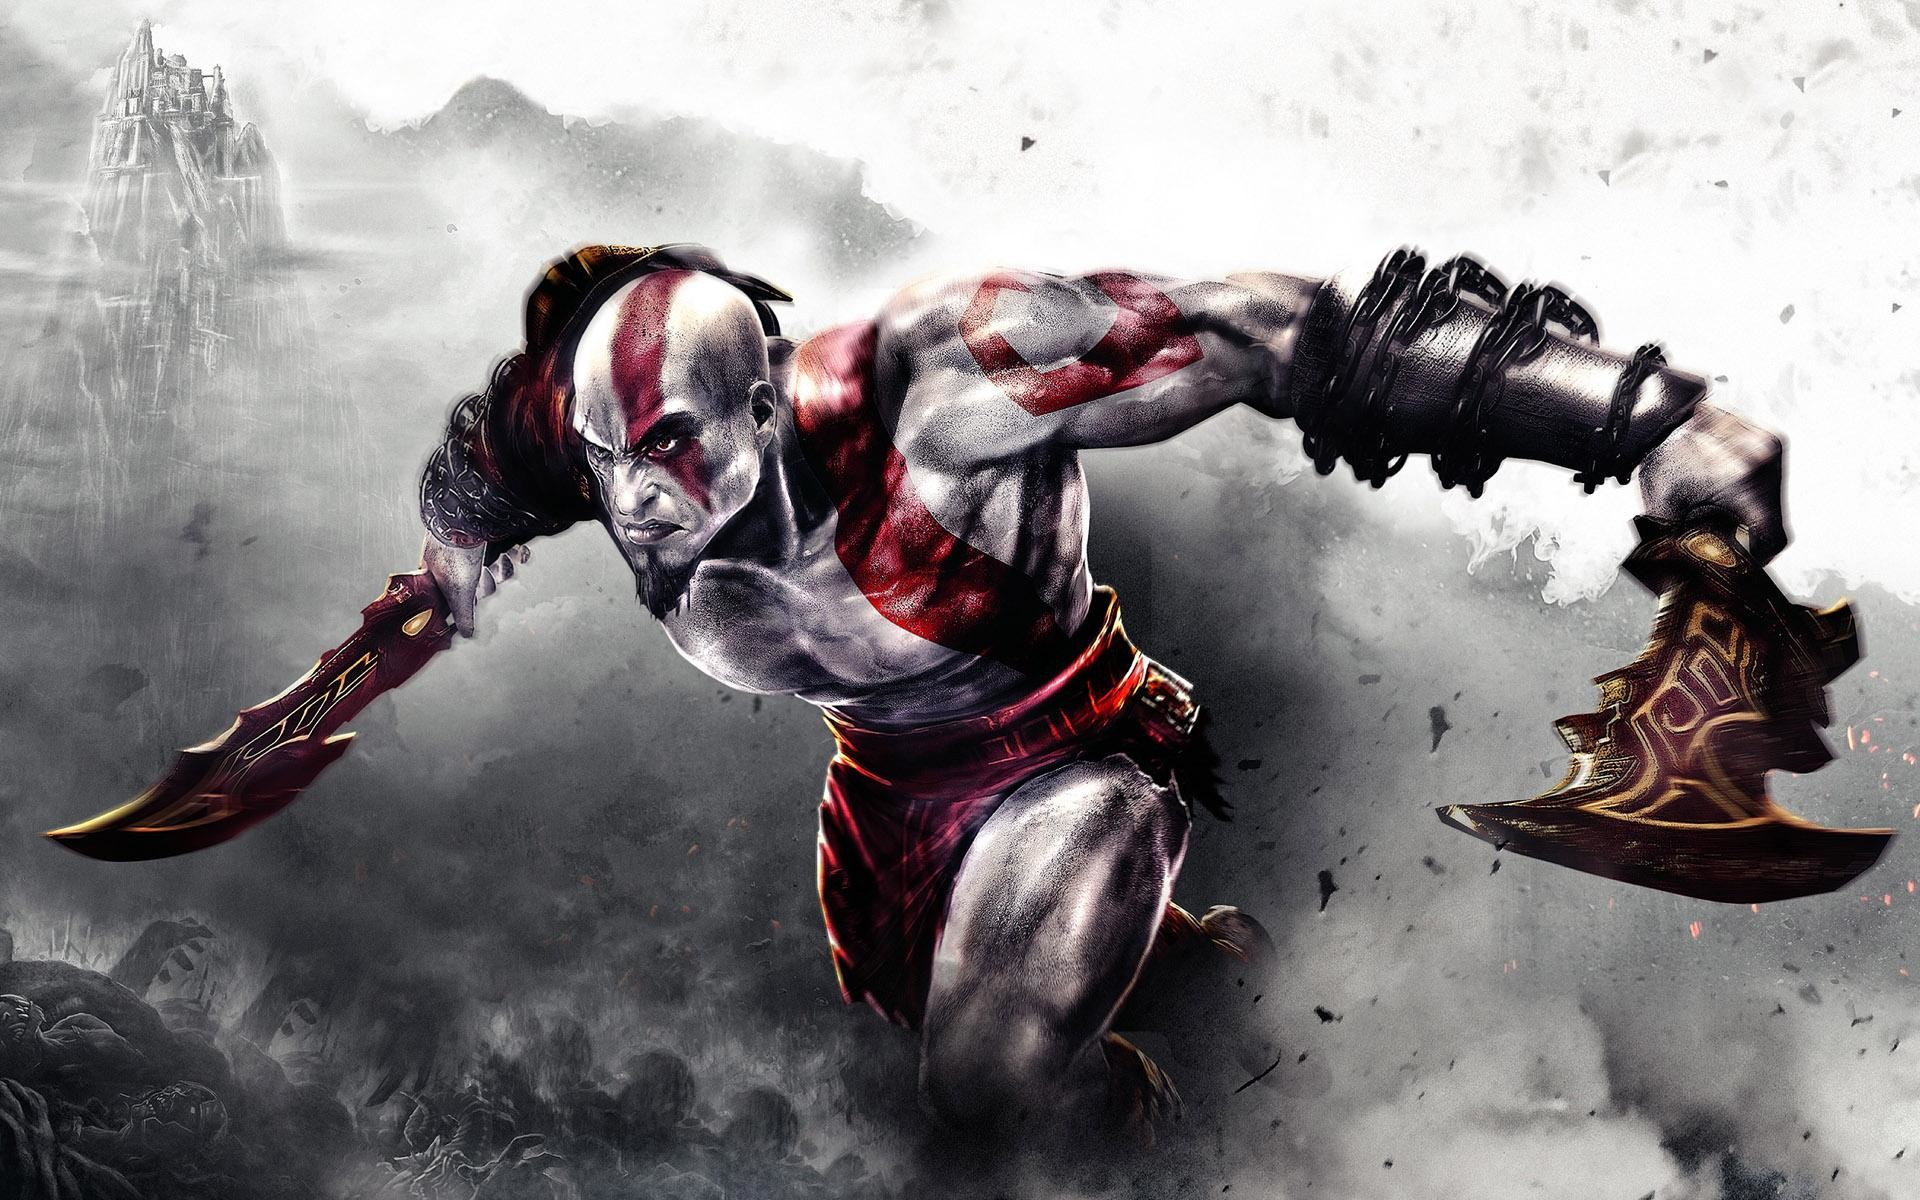 Top Best Gaming Wallpapers Enjoy the Gaming view Smashing Yolo | HD  Wallpapers | Pinterest | Gaming wallpapers and Wallpaper